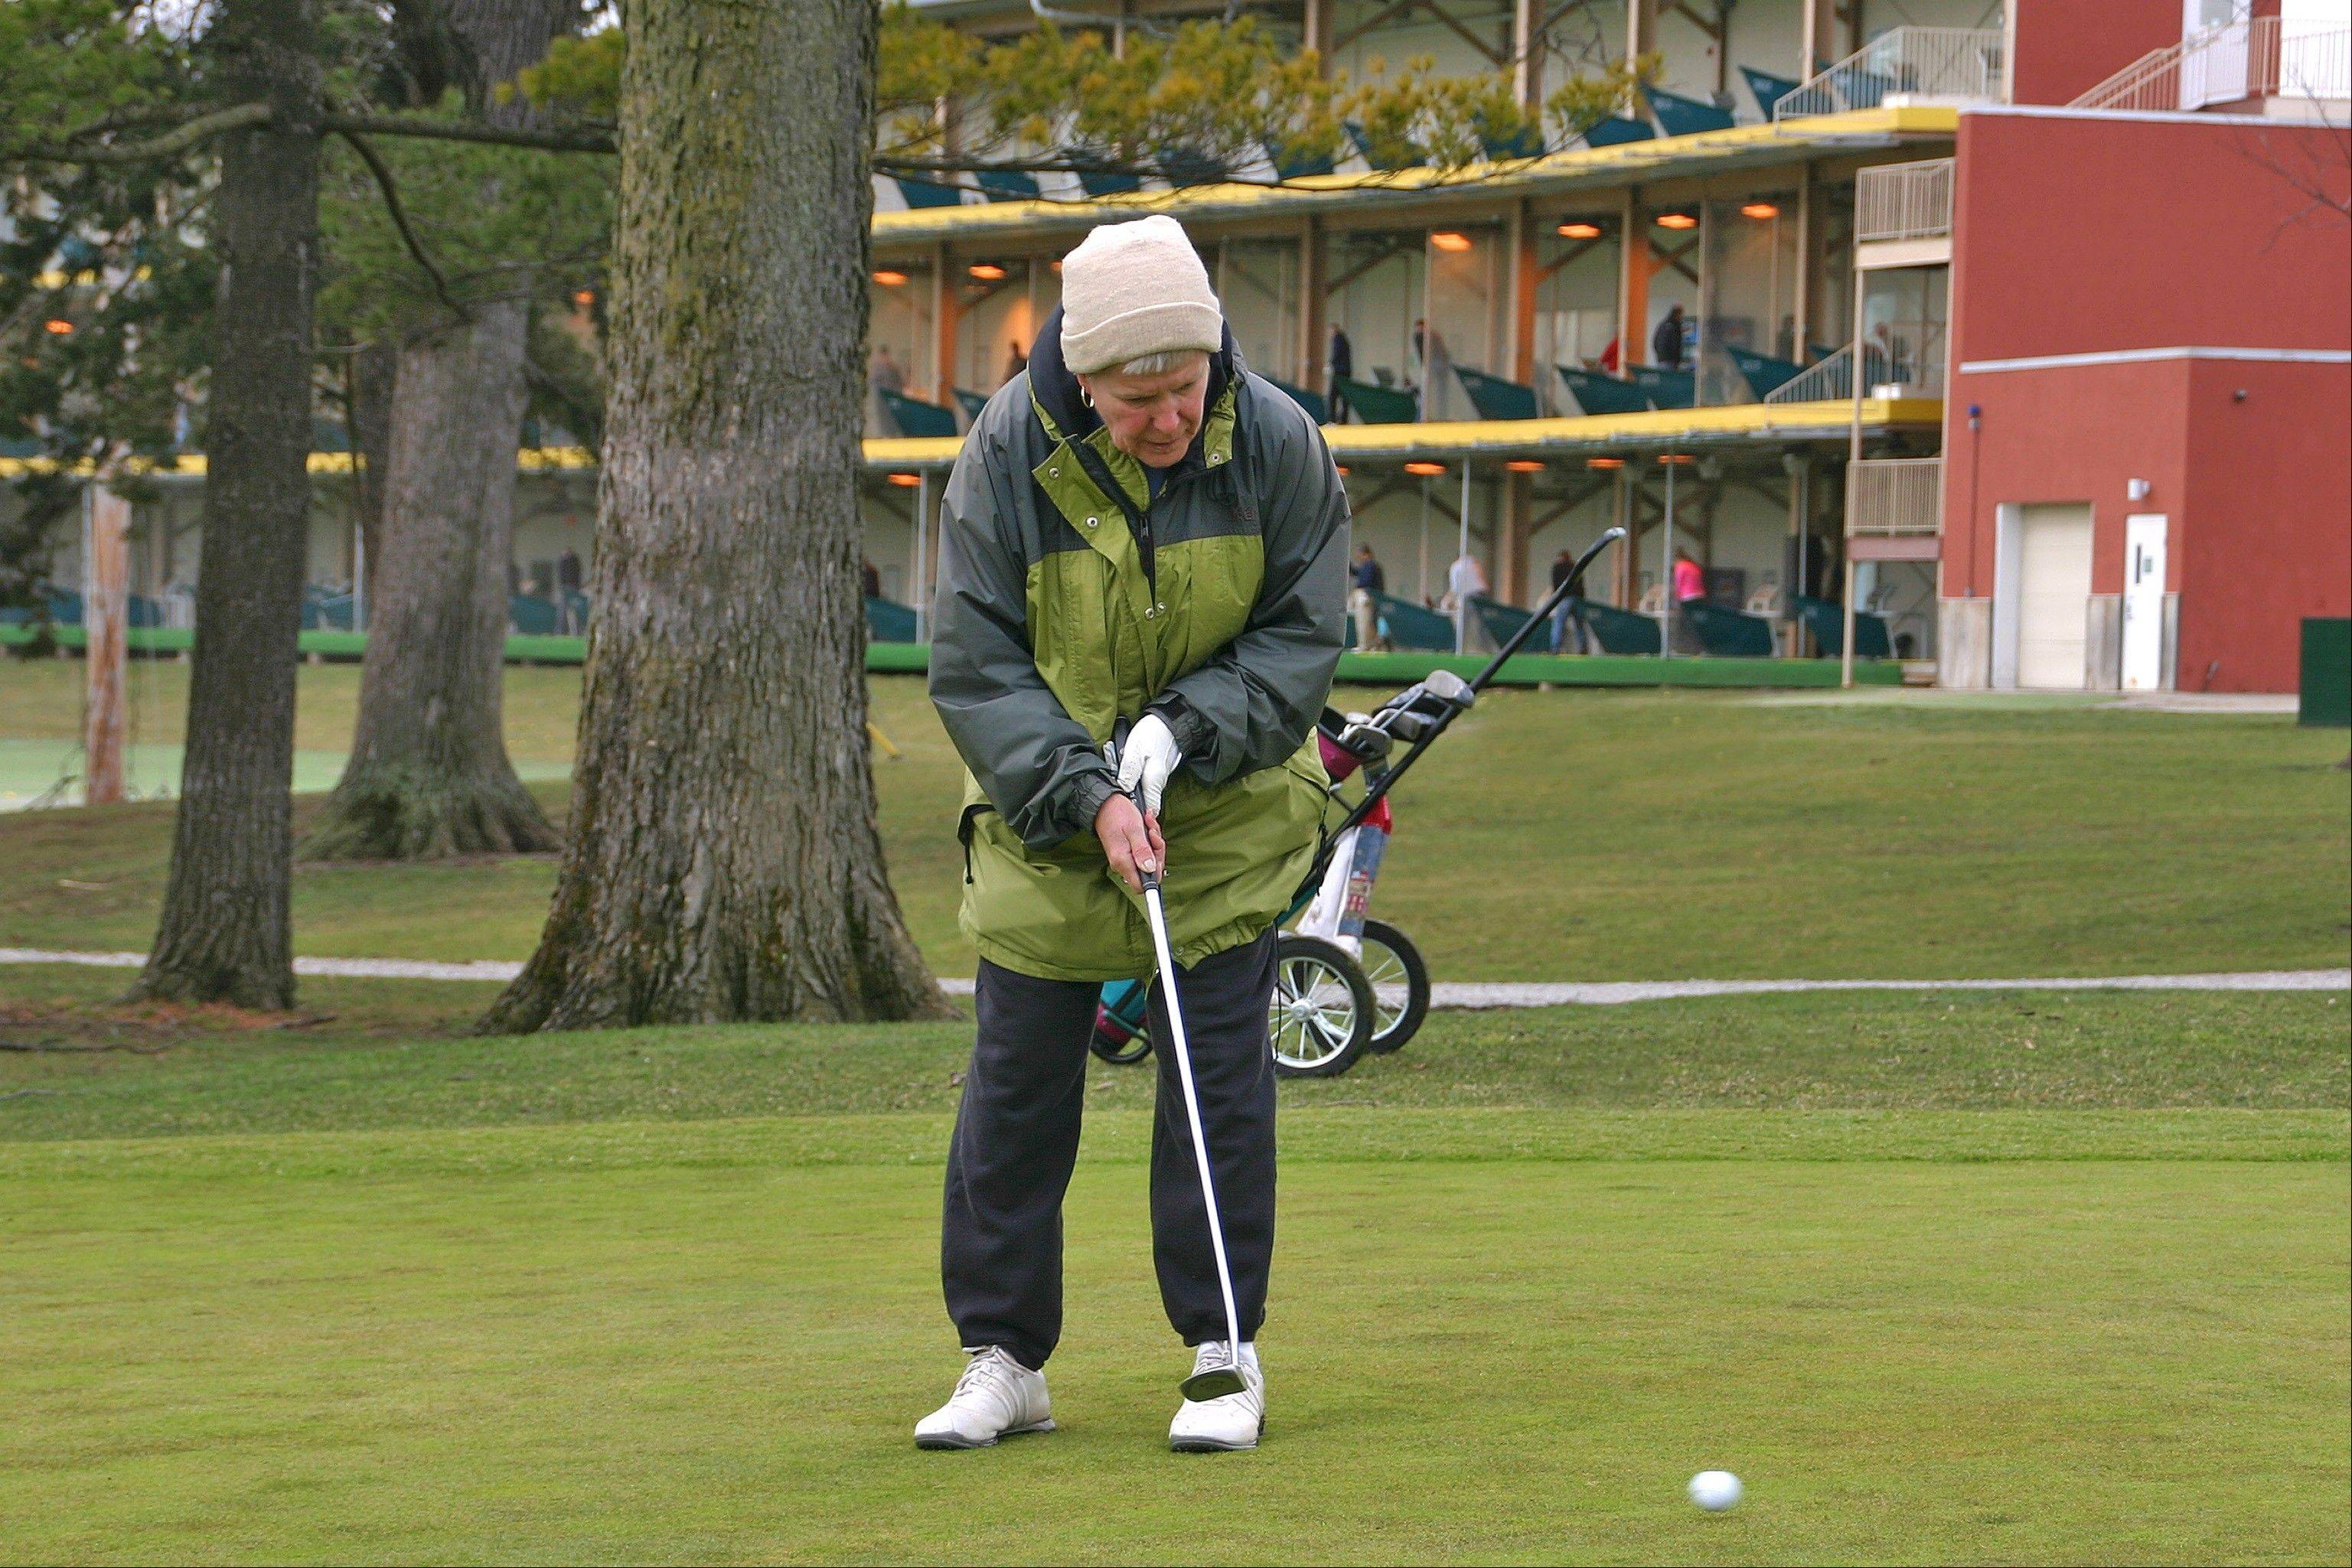 Marcheta Decoran sinks her final putt for a score of 46 at the 2013 Des Plaines Park District Chili Open.